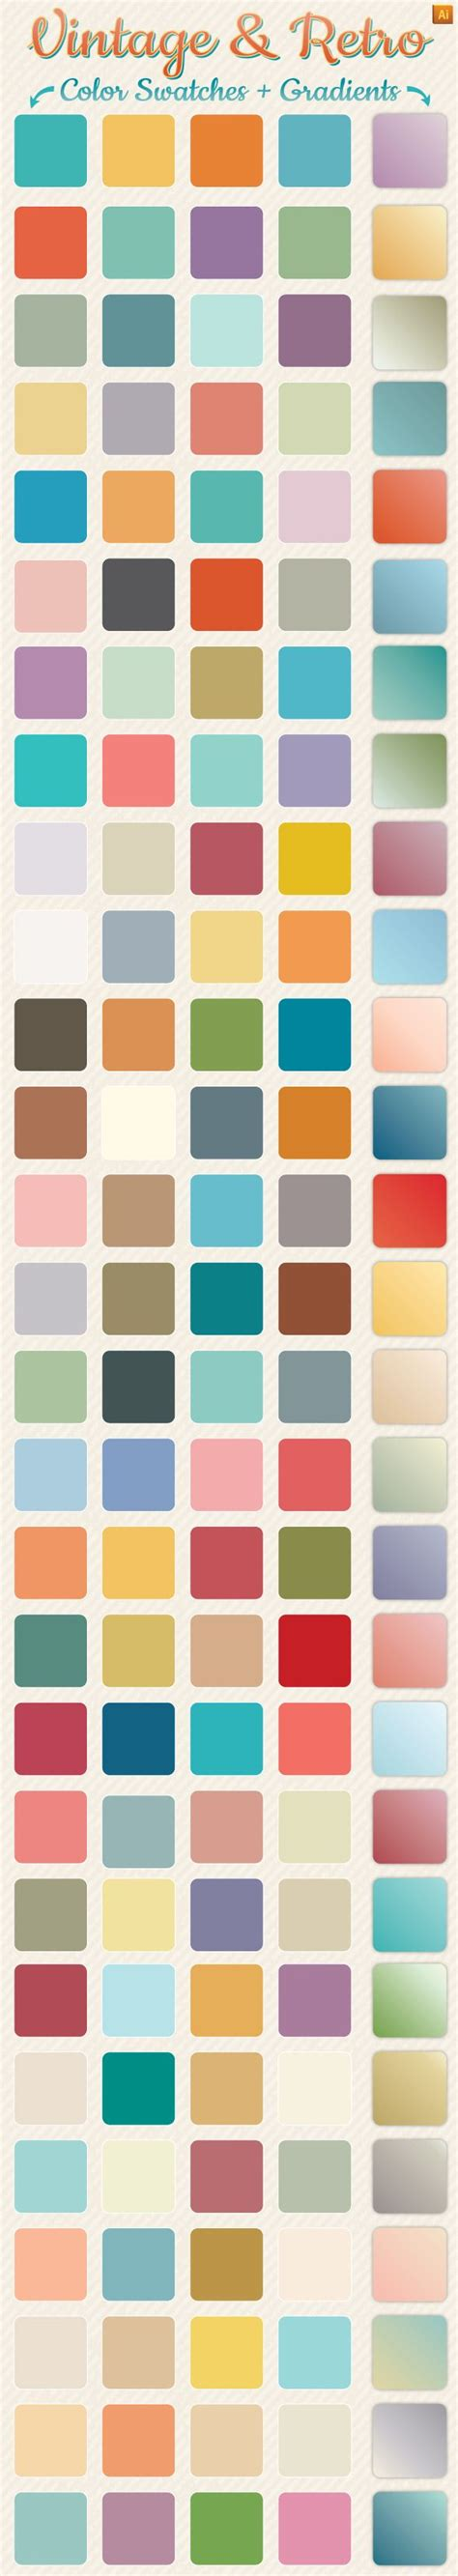 create pattern swatch adobe illustrator vintage retro gradients color swatches vintage